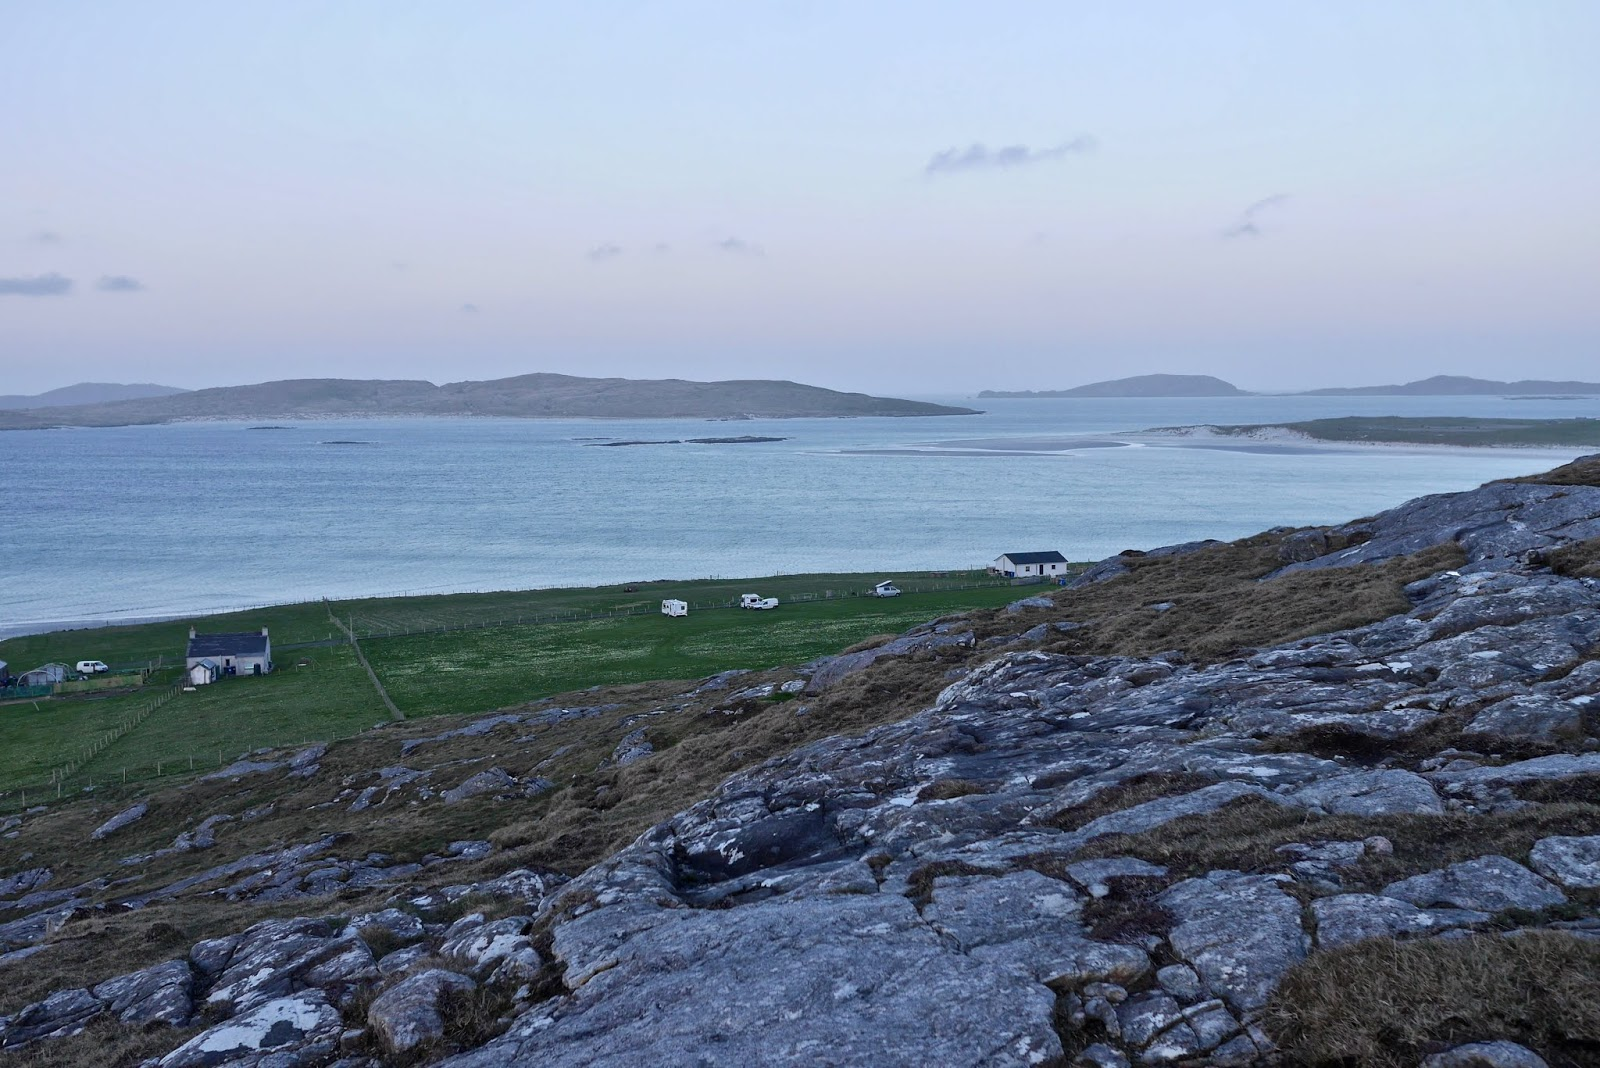 Scurrival Campsite in Barra by Cal McTravel of www.CalMcTraves.com